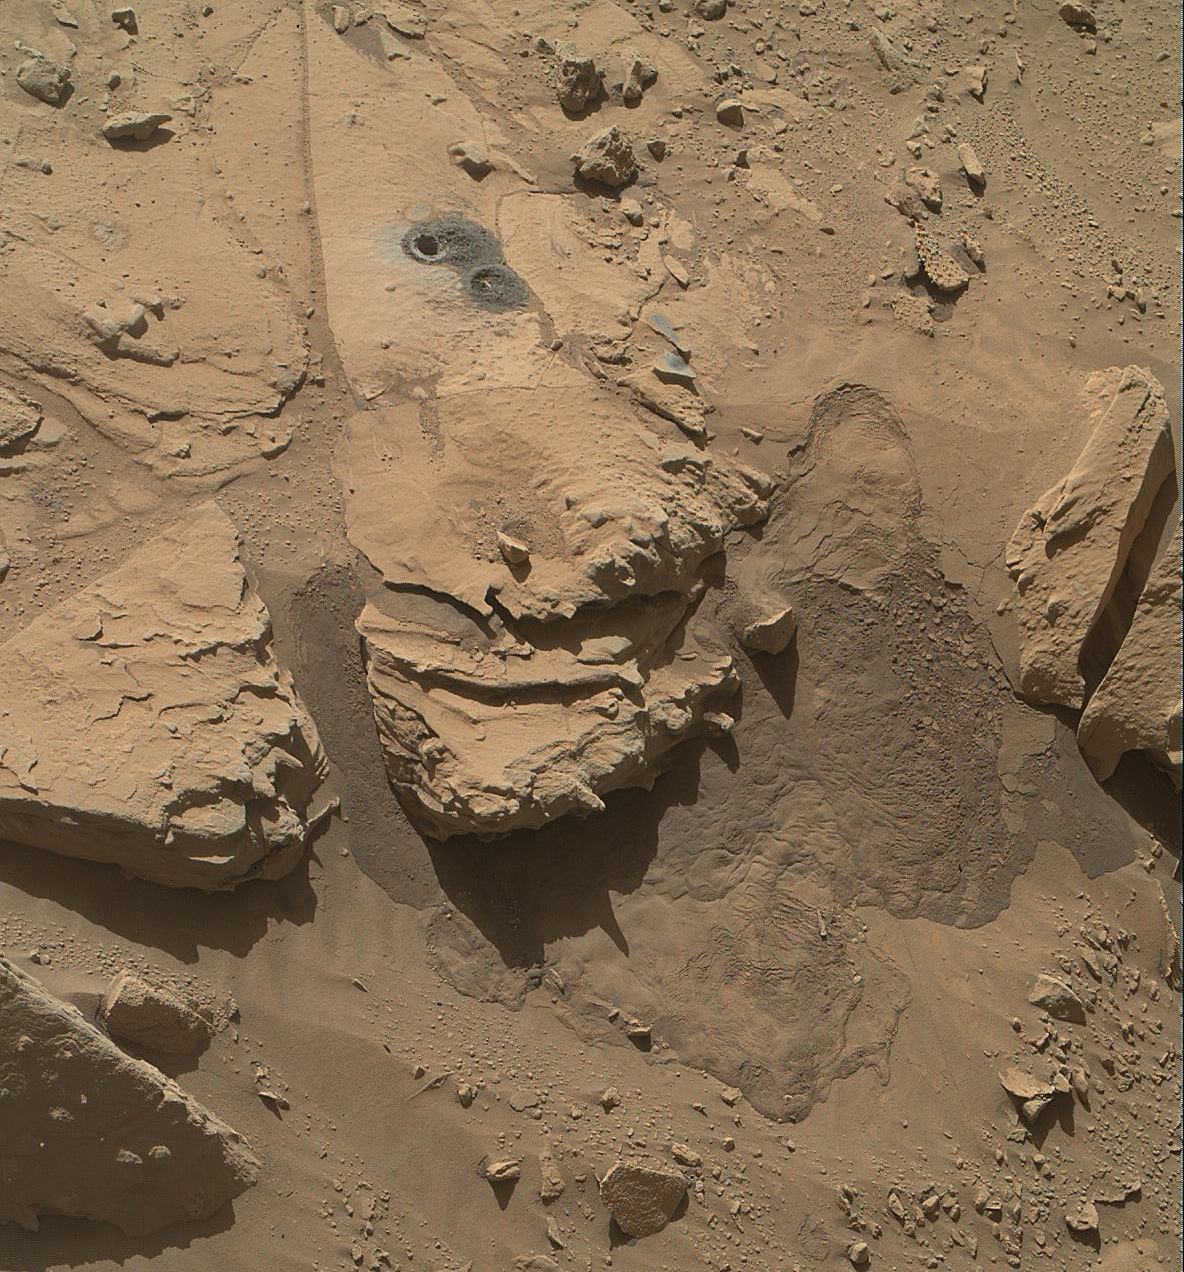 This view from the Mars Hand Lens Imager (MAHLI) on NASA's Curiosity Mars Rover shows the rock target  Windjana  and its immediate surroundings after inspection of the site by the rover.  The drilling of a test hole and a sample collection hole produced the mounds of drill cuttings that are markedly less red than the other visible surfaces. This view is from the 627th Martian day, or sol, of Curiosity's work on Mars (May 12, 2014).